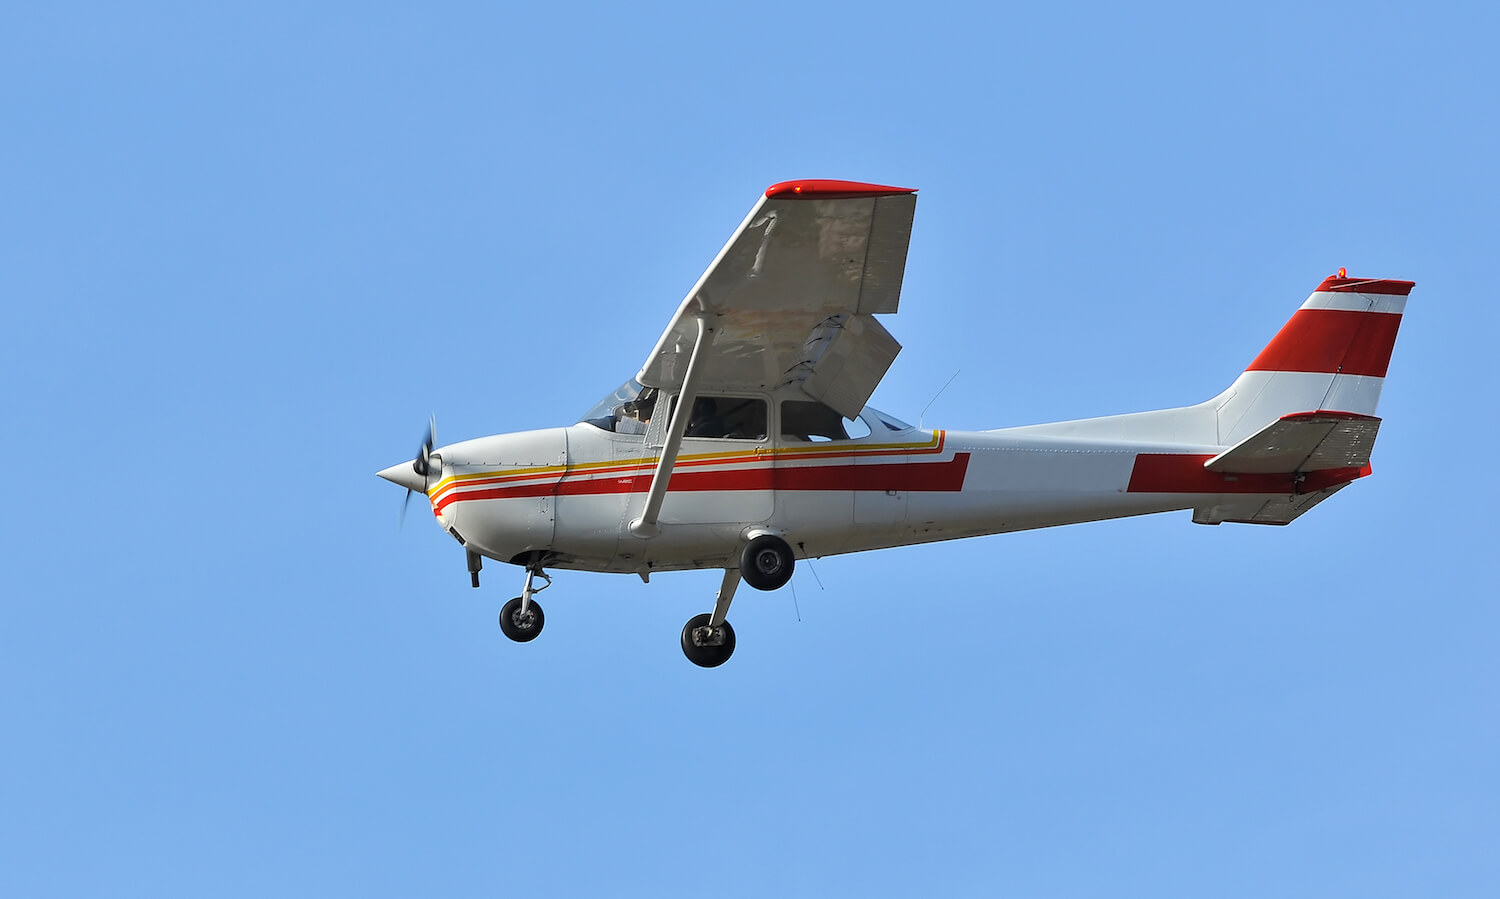 the most popular mass produced aircraft in history. A very popular single engine overwing light aircraft